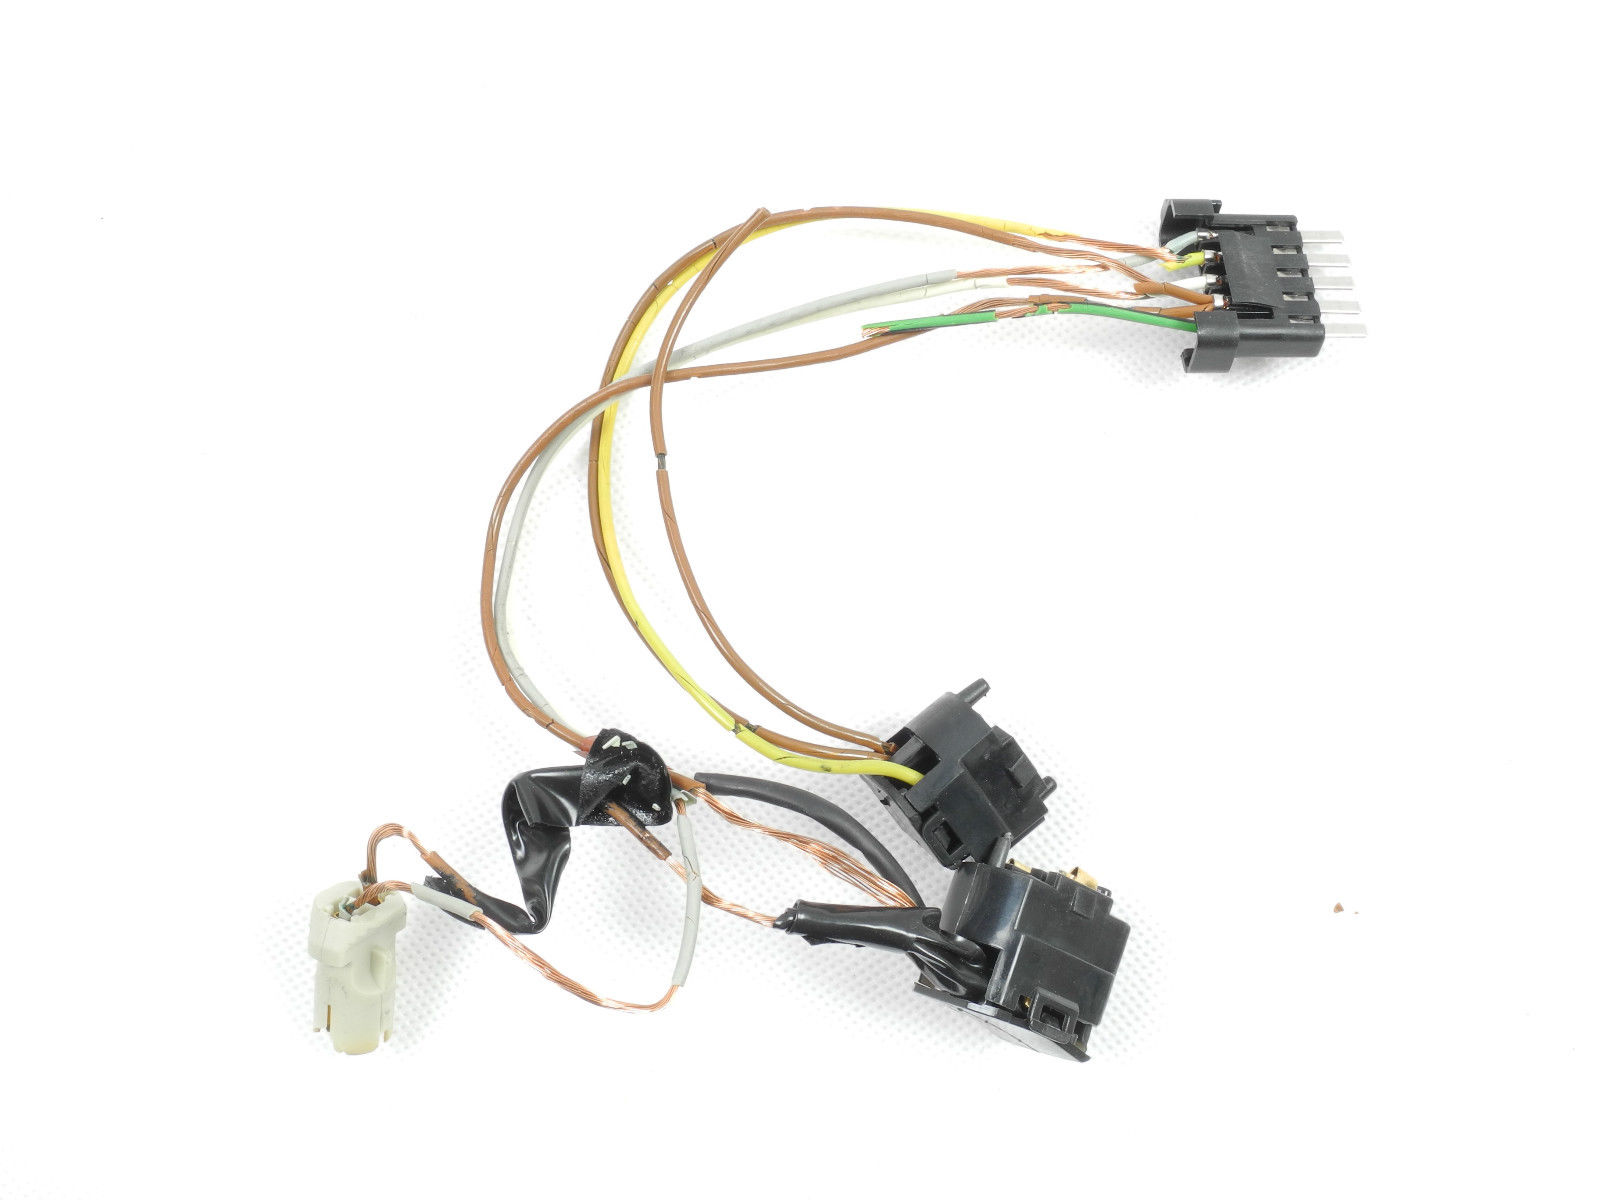 f3dc 1974 mercedes kit car wiring harness | wiring library  wiring library